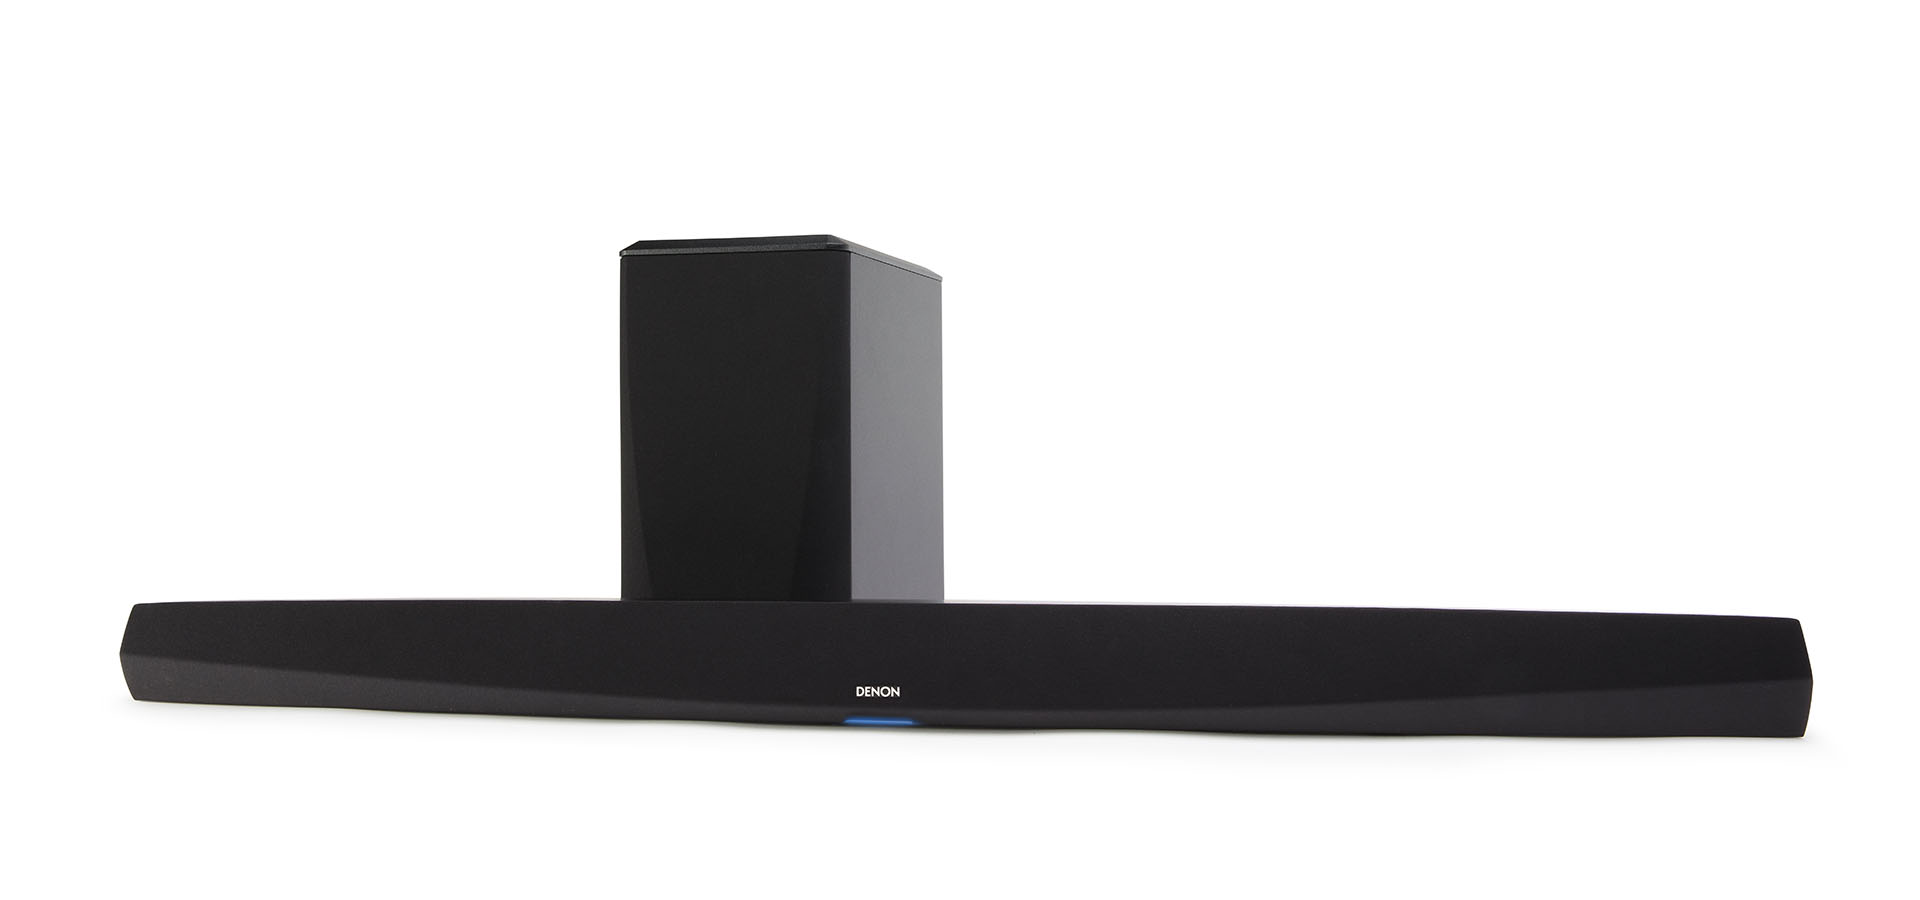 Denon DHT-S516H Soundbar with Wireless Subwoofer and HEOS Built-in black